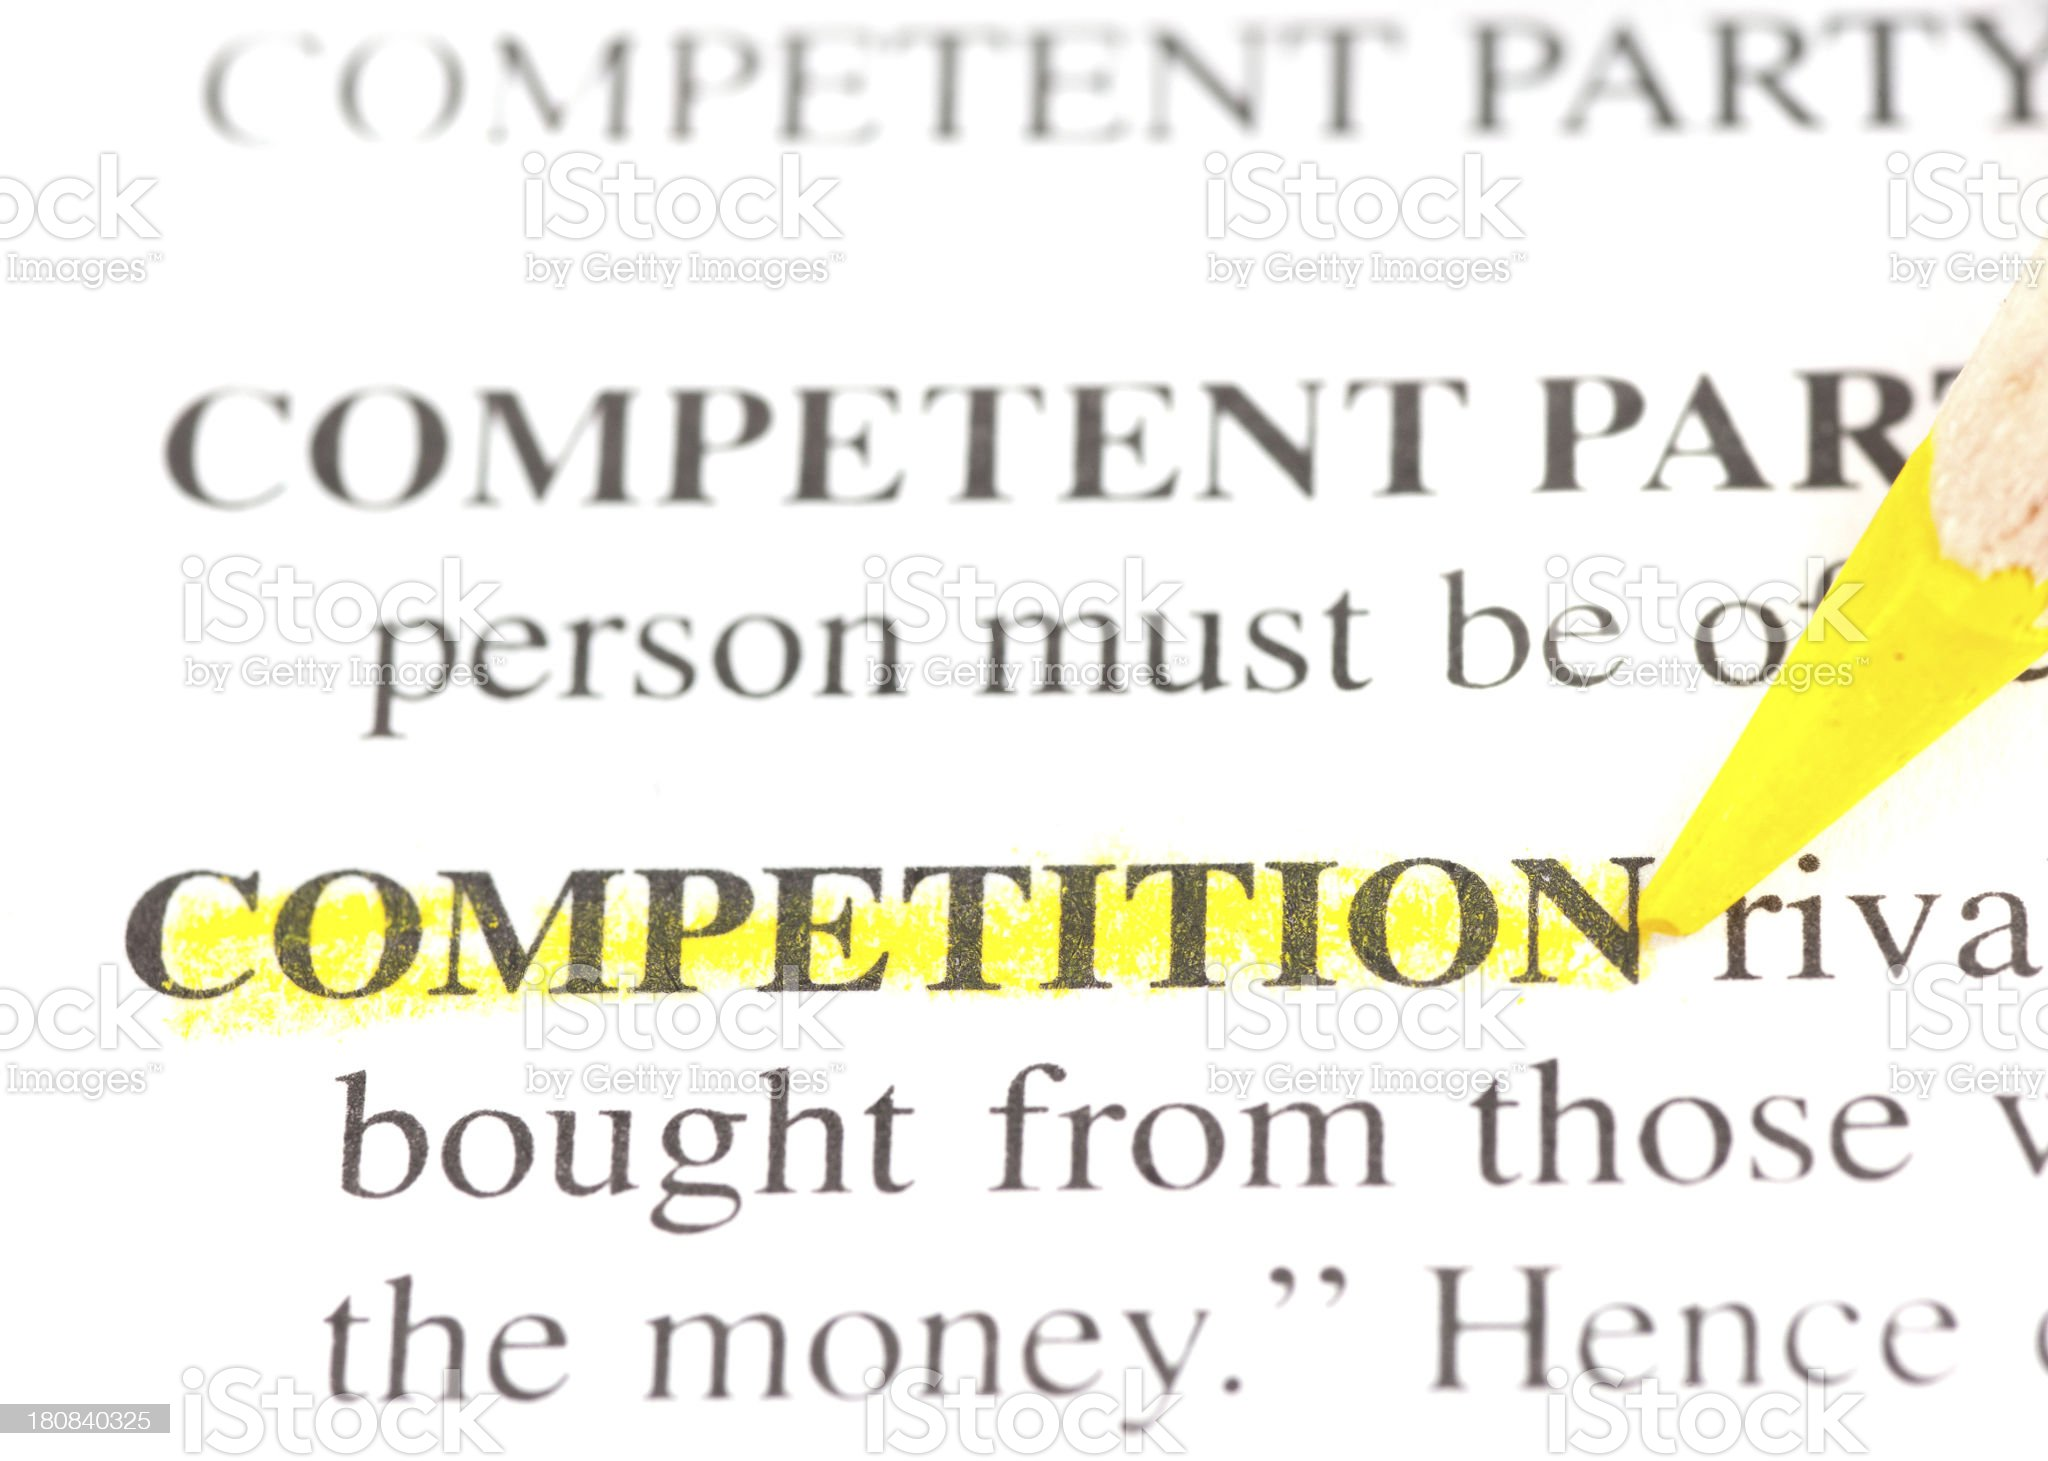 competition definition marked in dictionary royalty-free stock photo